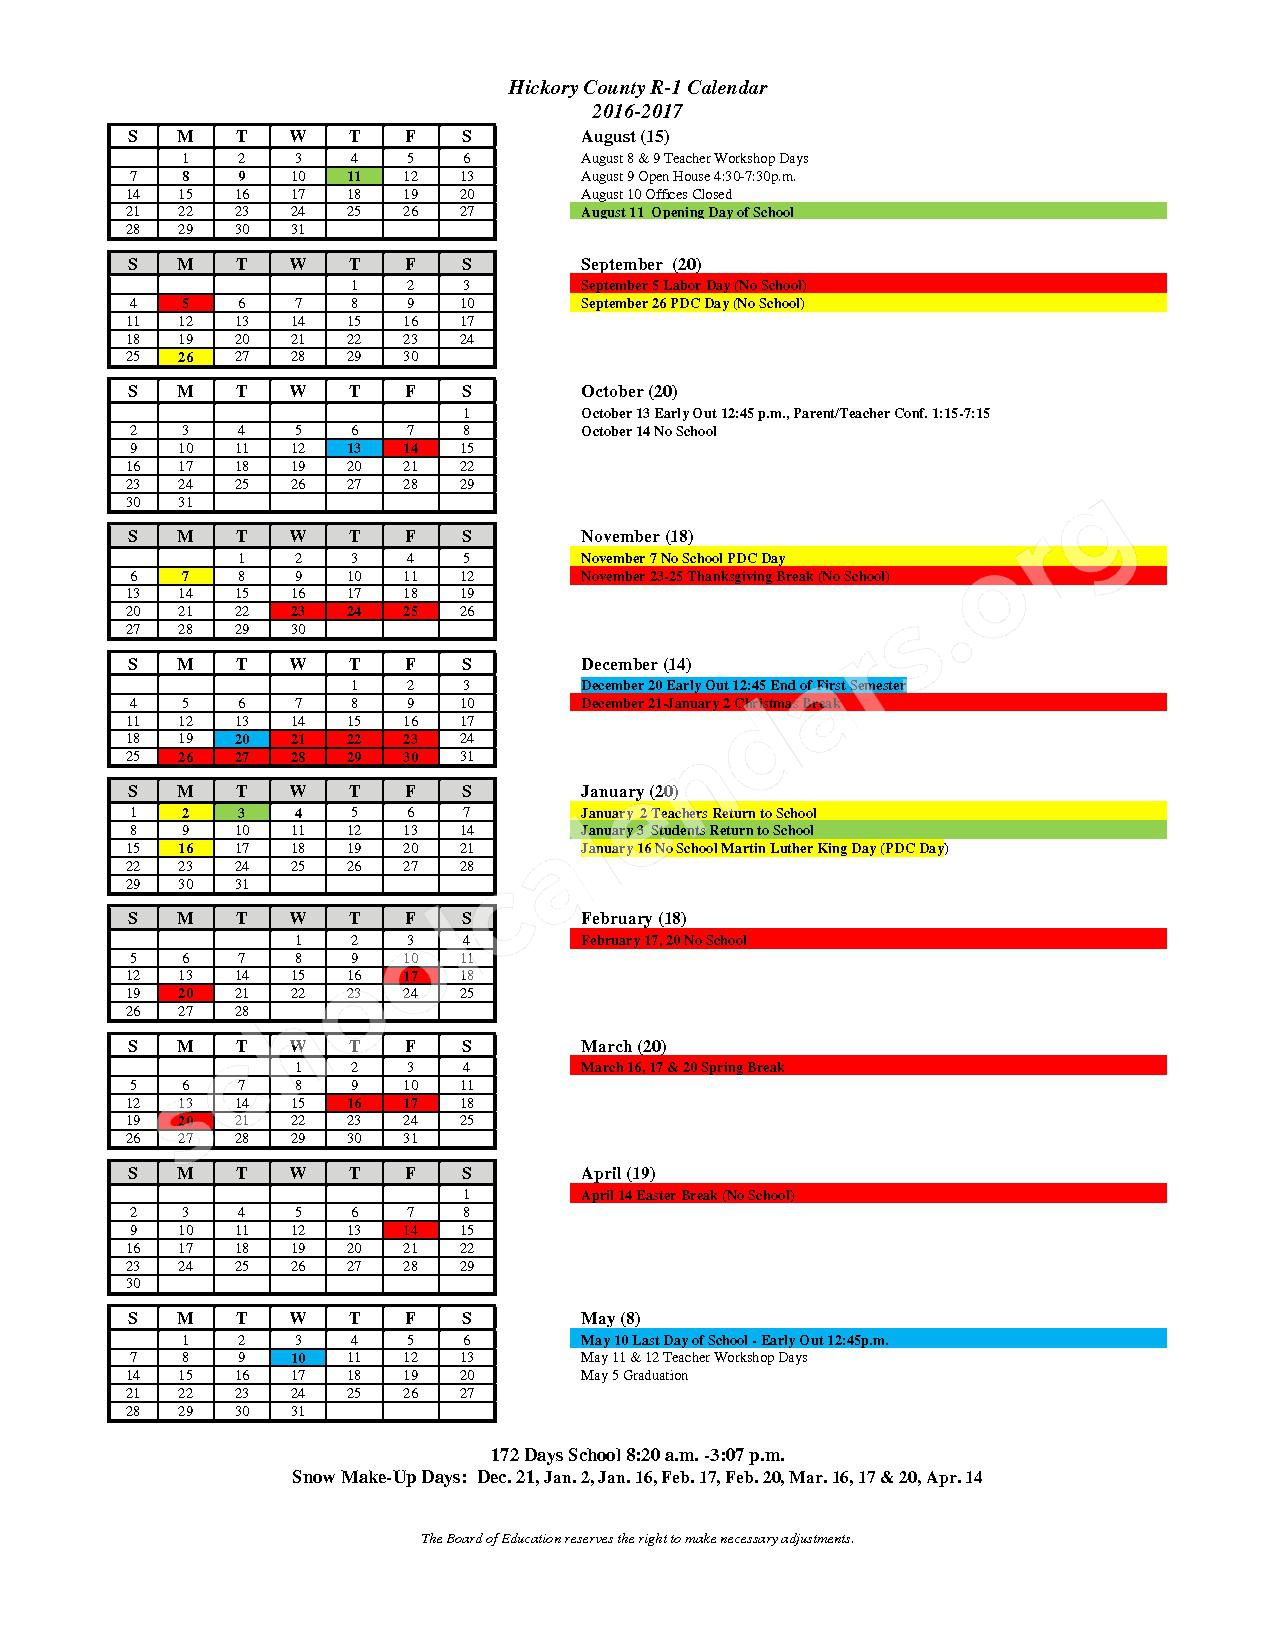 2016 - 2017 School Calendar – Hickory County R-I School District - Skyline Schools – page 1